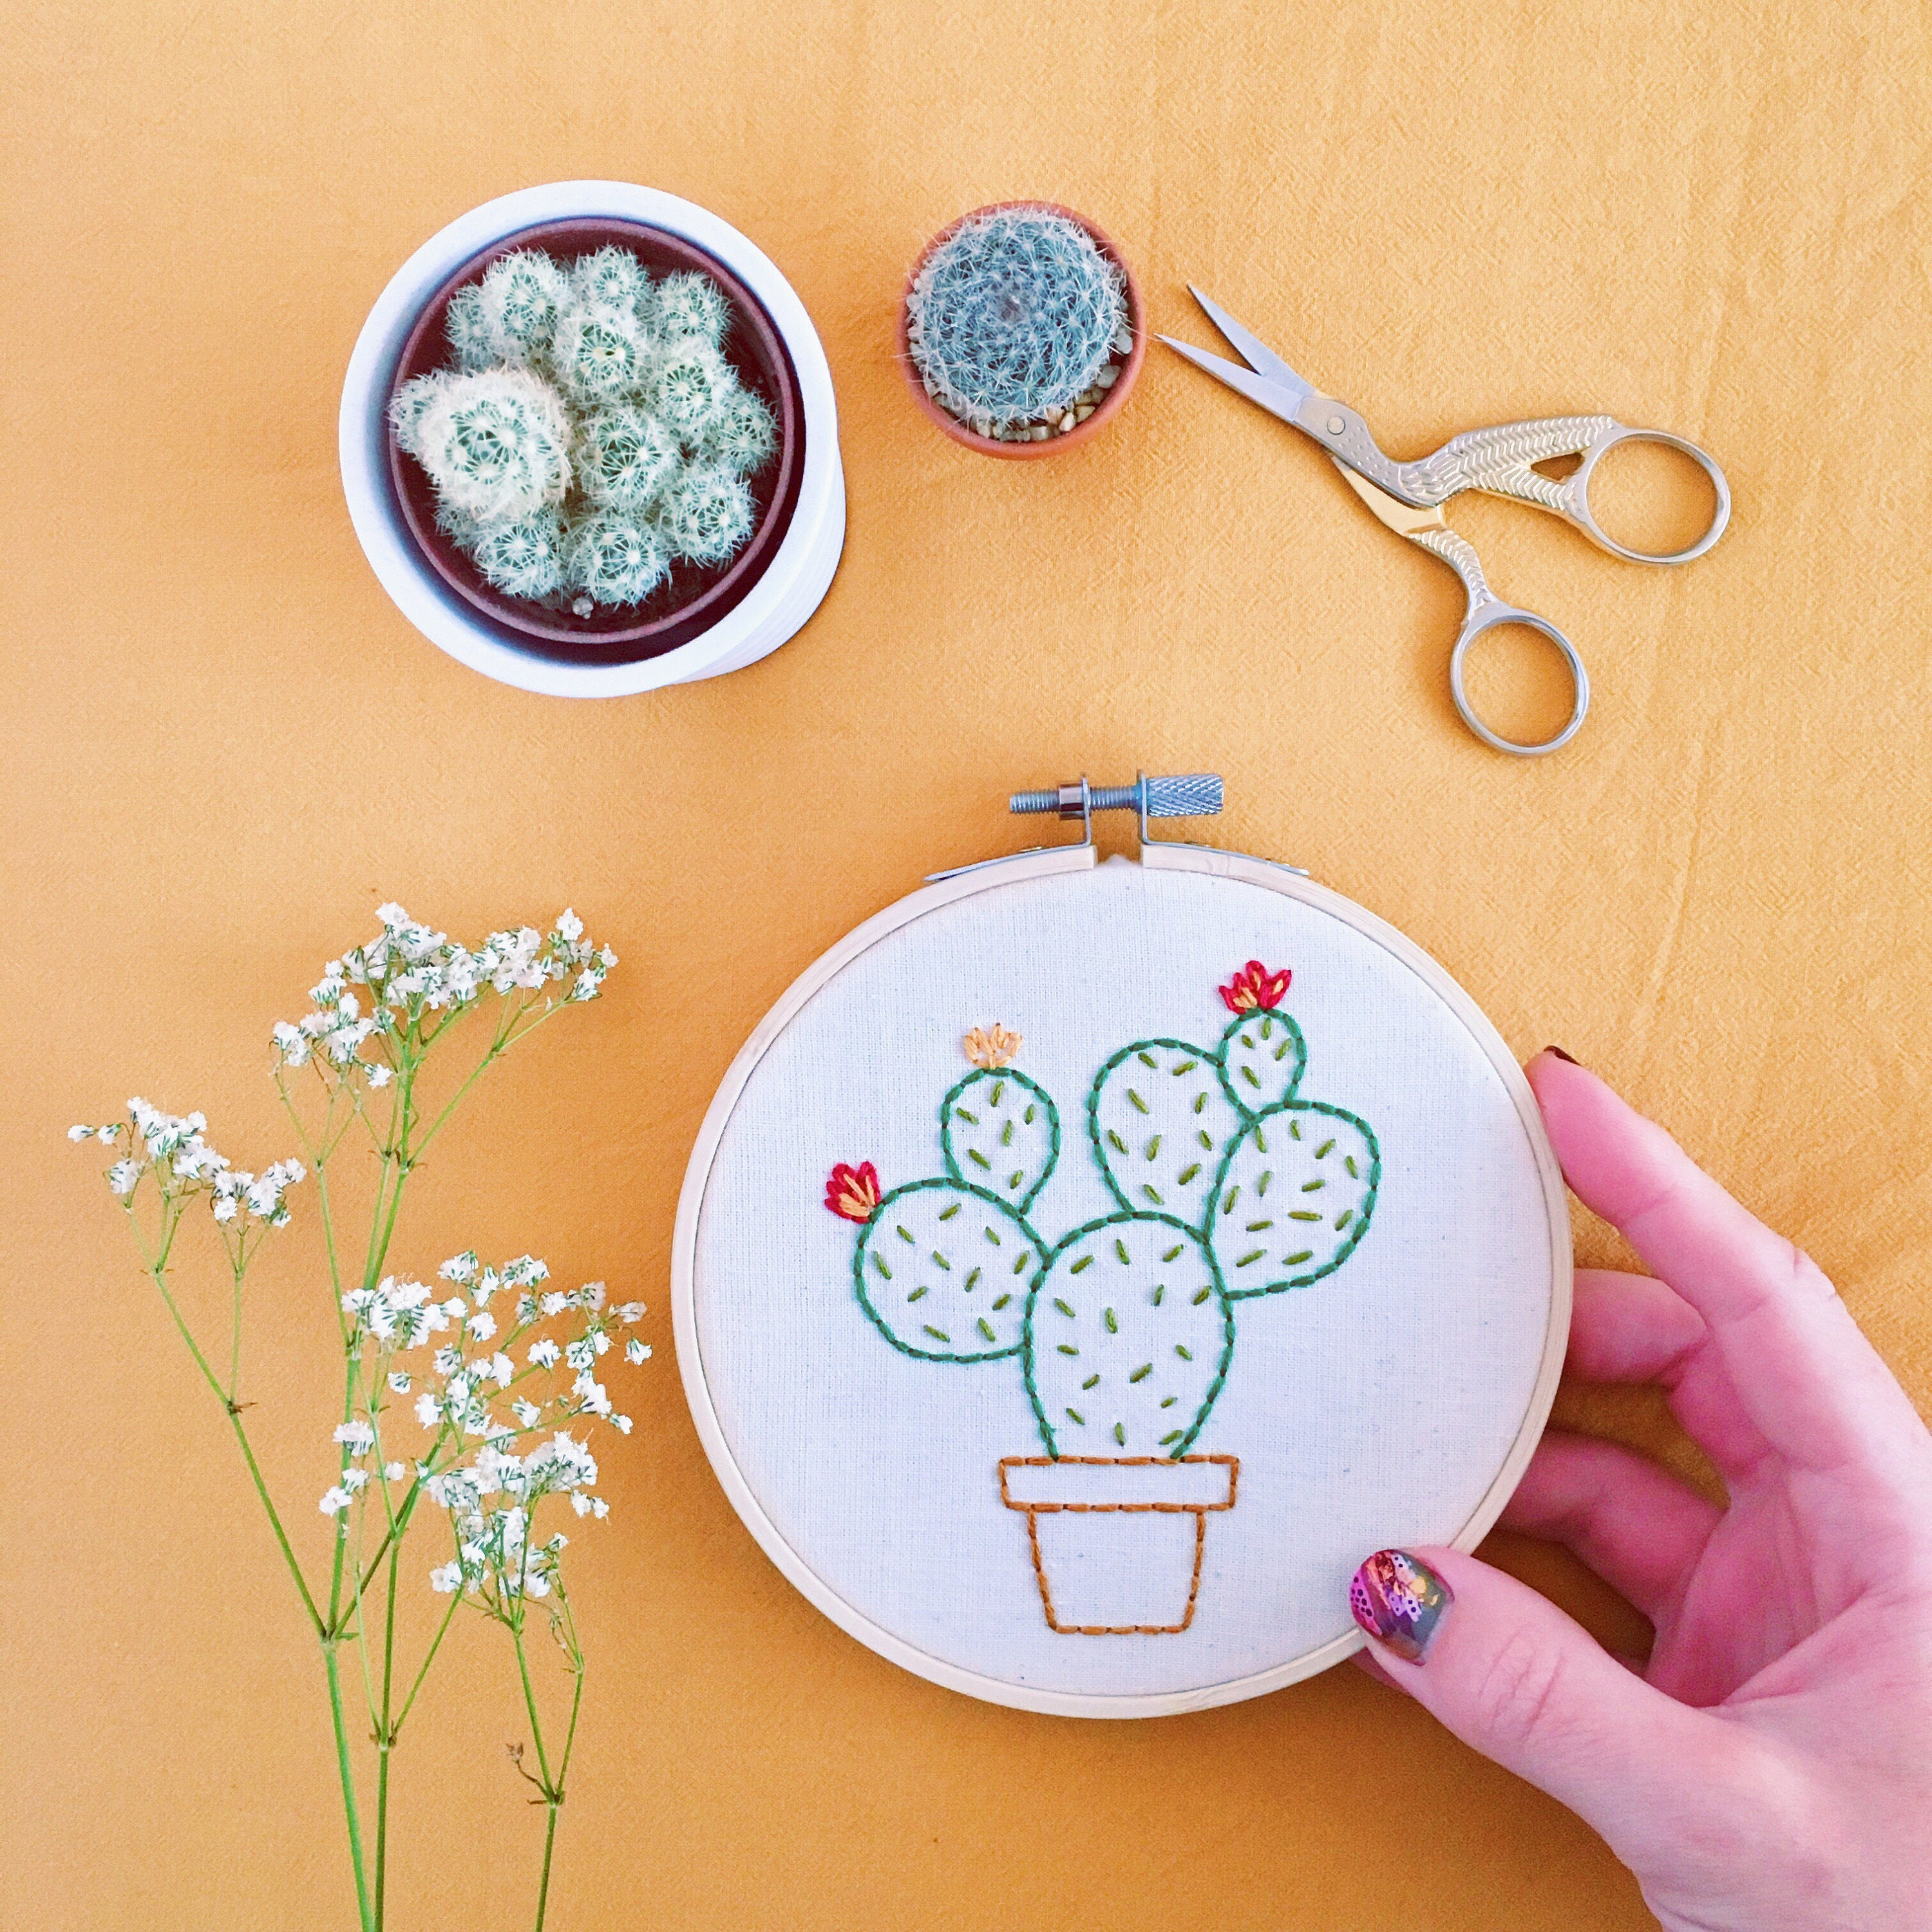 Prickly pear cactus hand embroideredery wall hoop